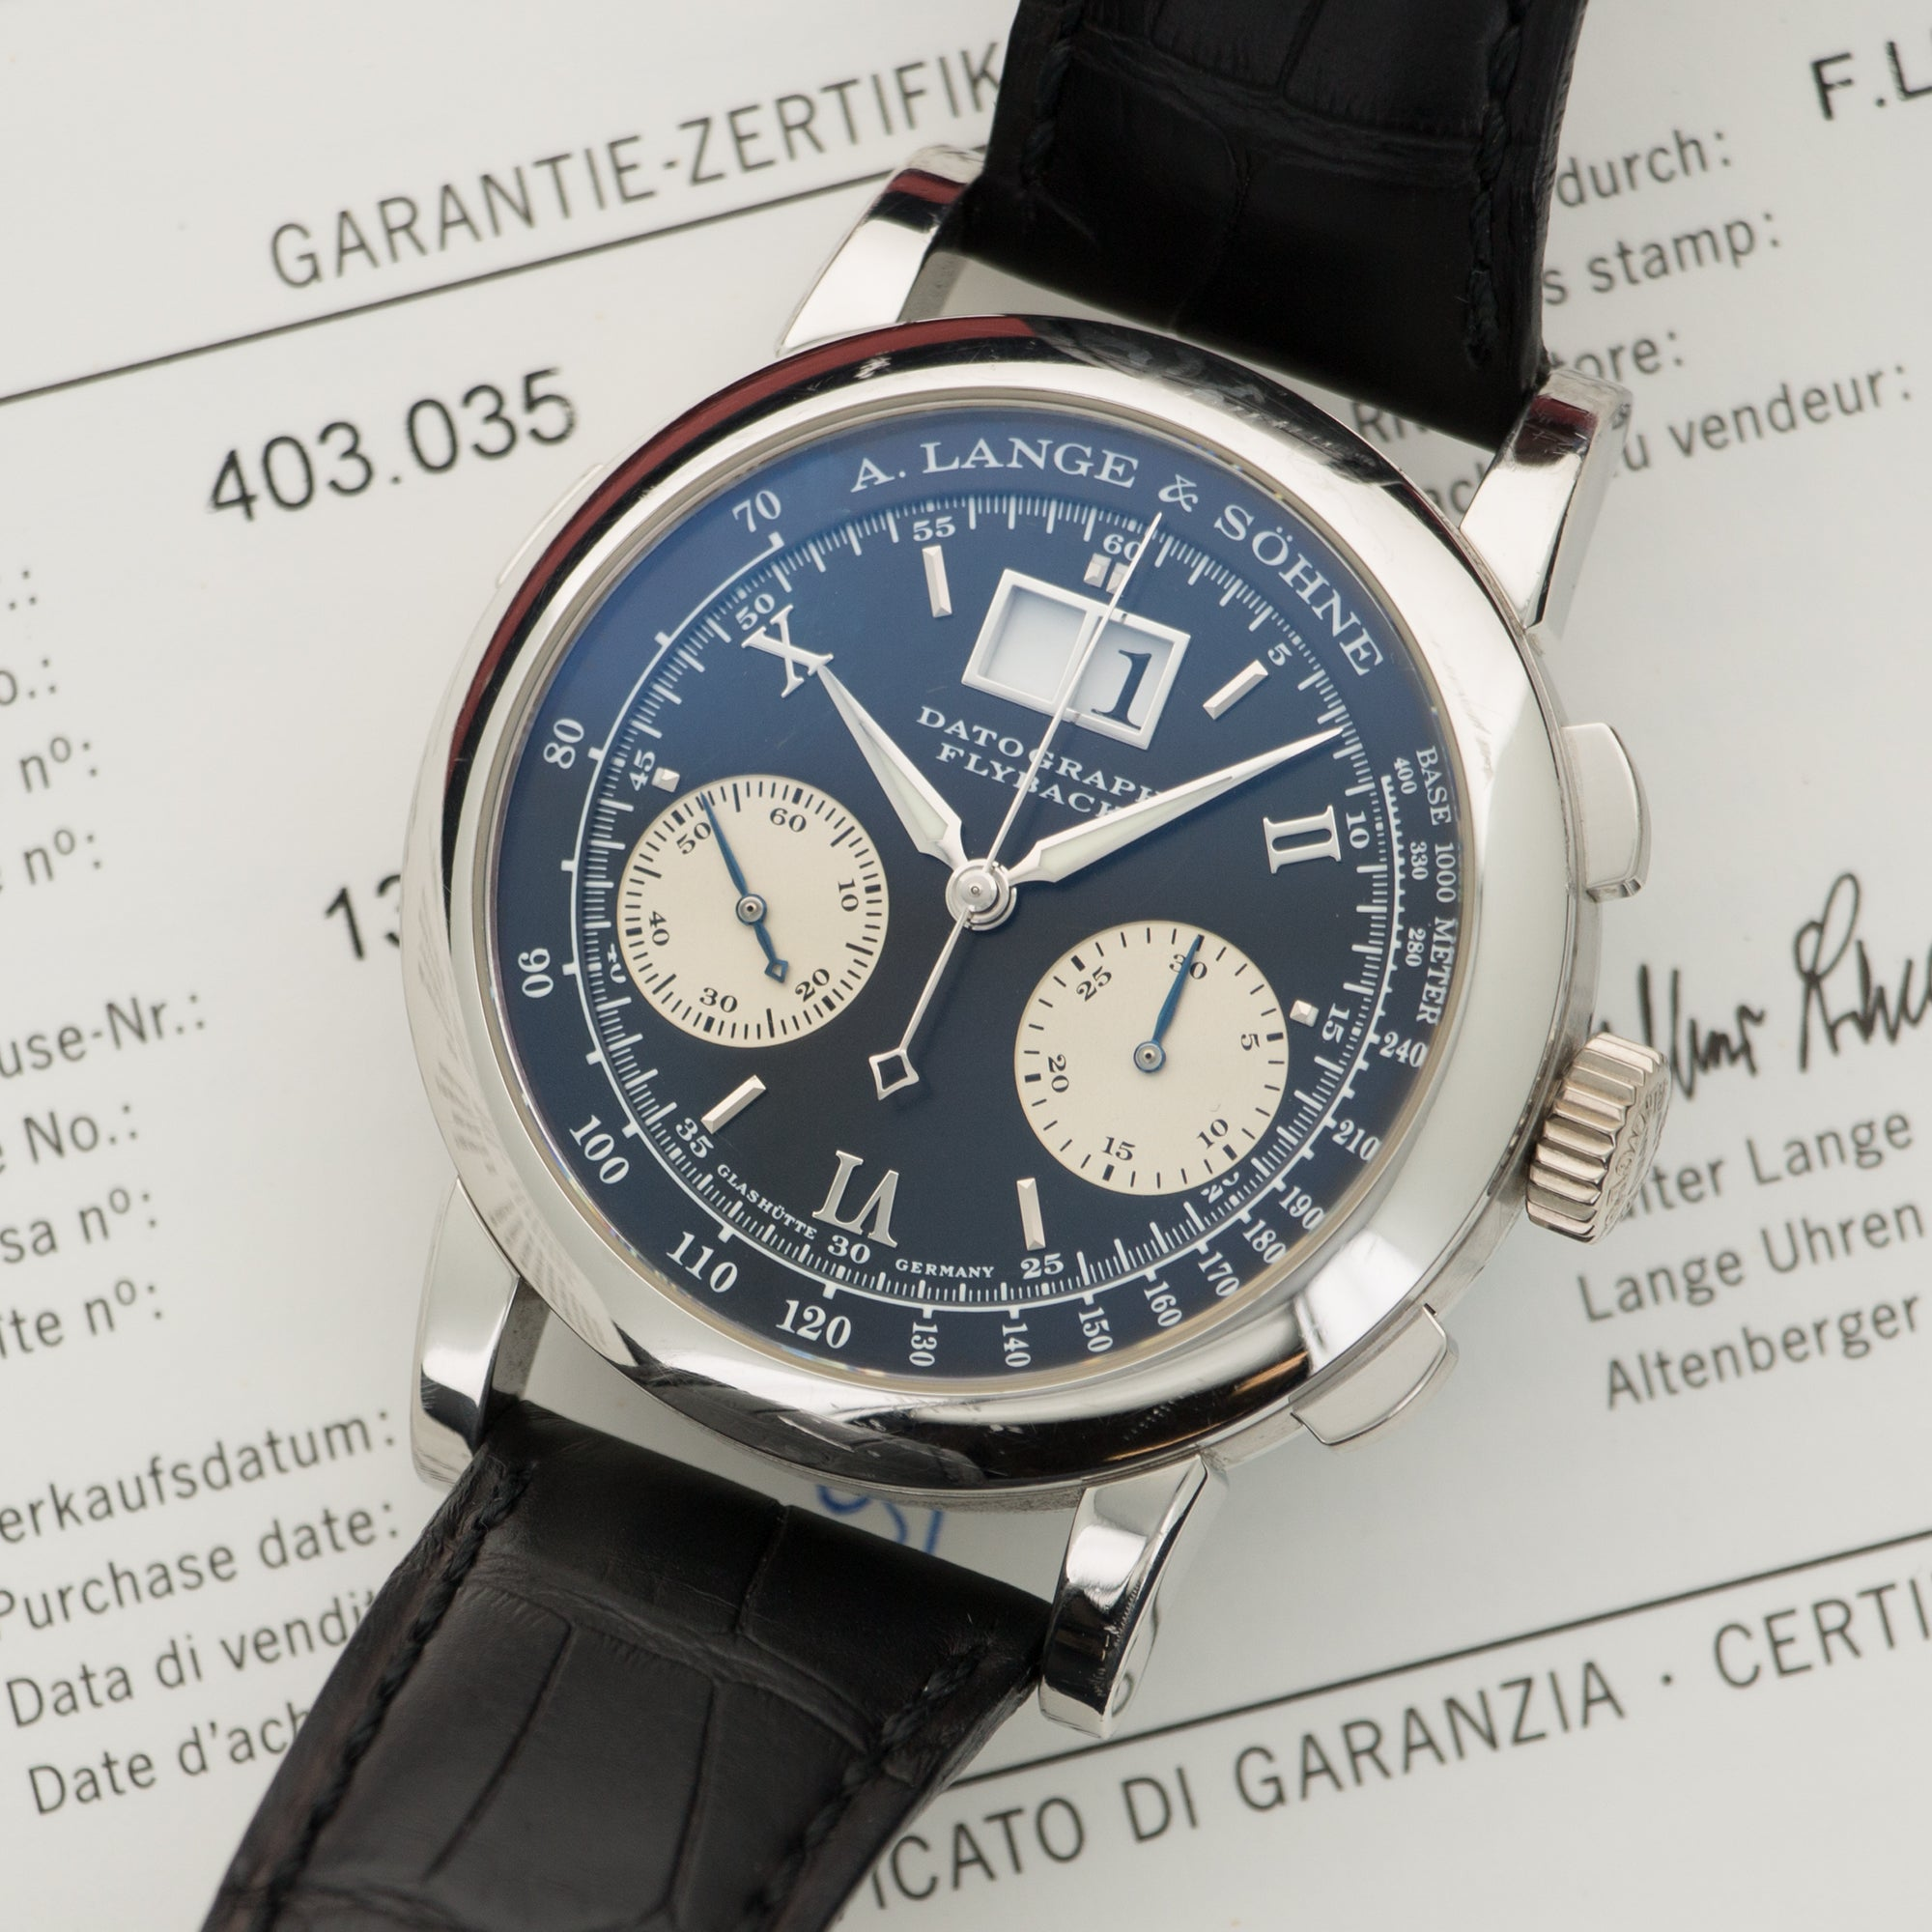 A. Lange & Sohne Datograph 403.035 Platinum  Likely Never Polished, Original Finish Gents Platinum Black with Silver Subsidiary Dials 40mm Manual 2001 Black Crocodile Original Box and Certificate